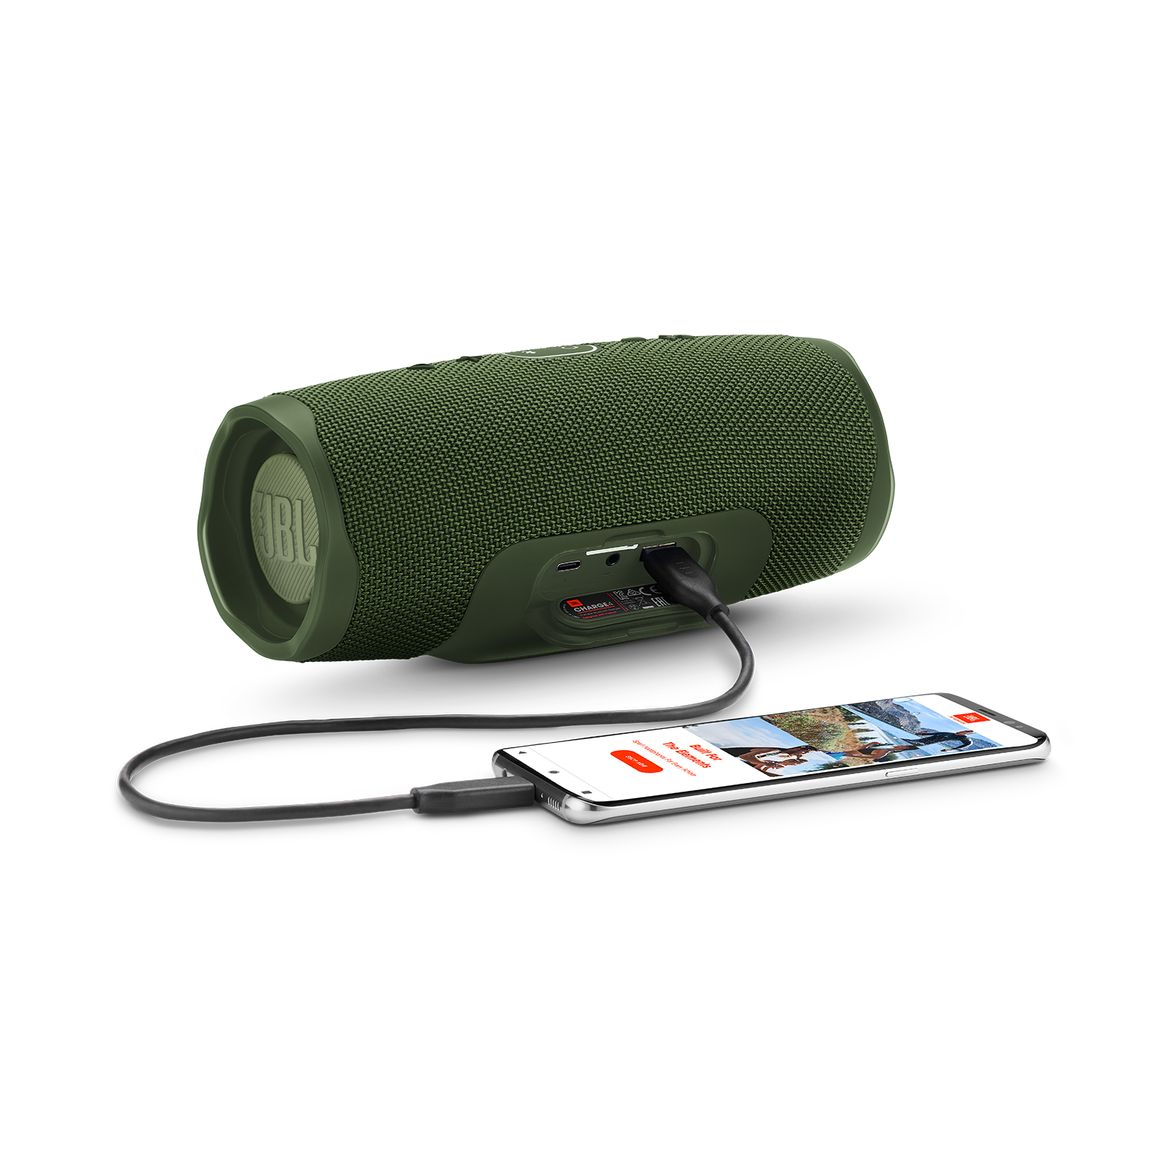 JBL_Charge4_Phone_ForestGreen-1605x1605px